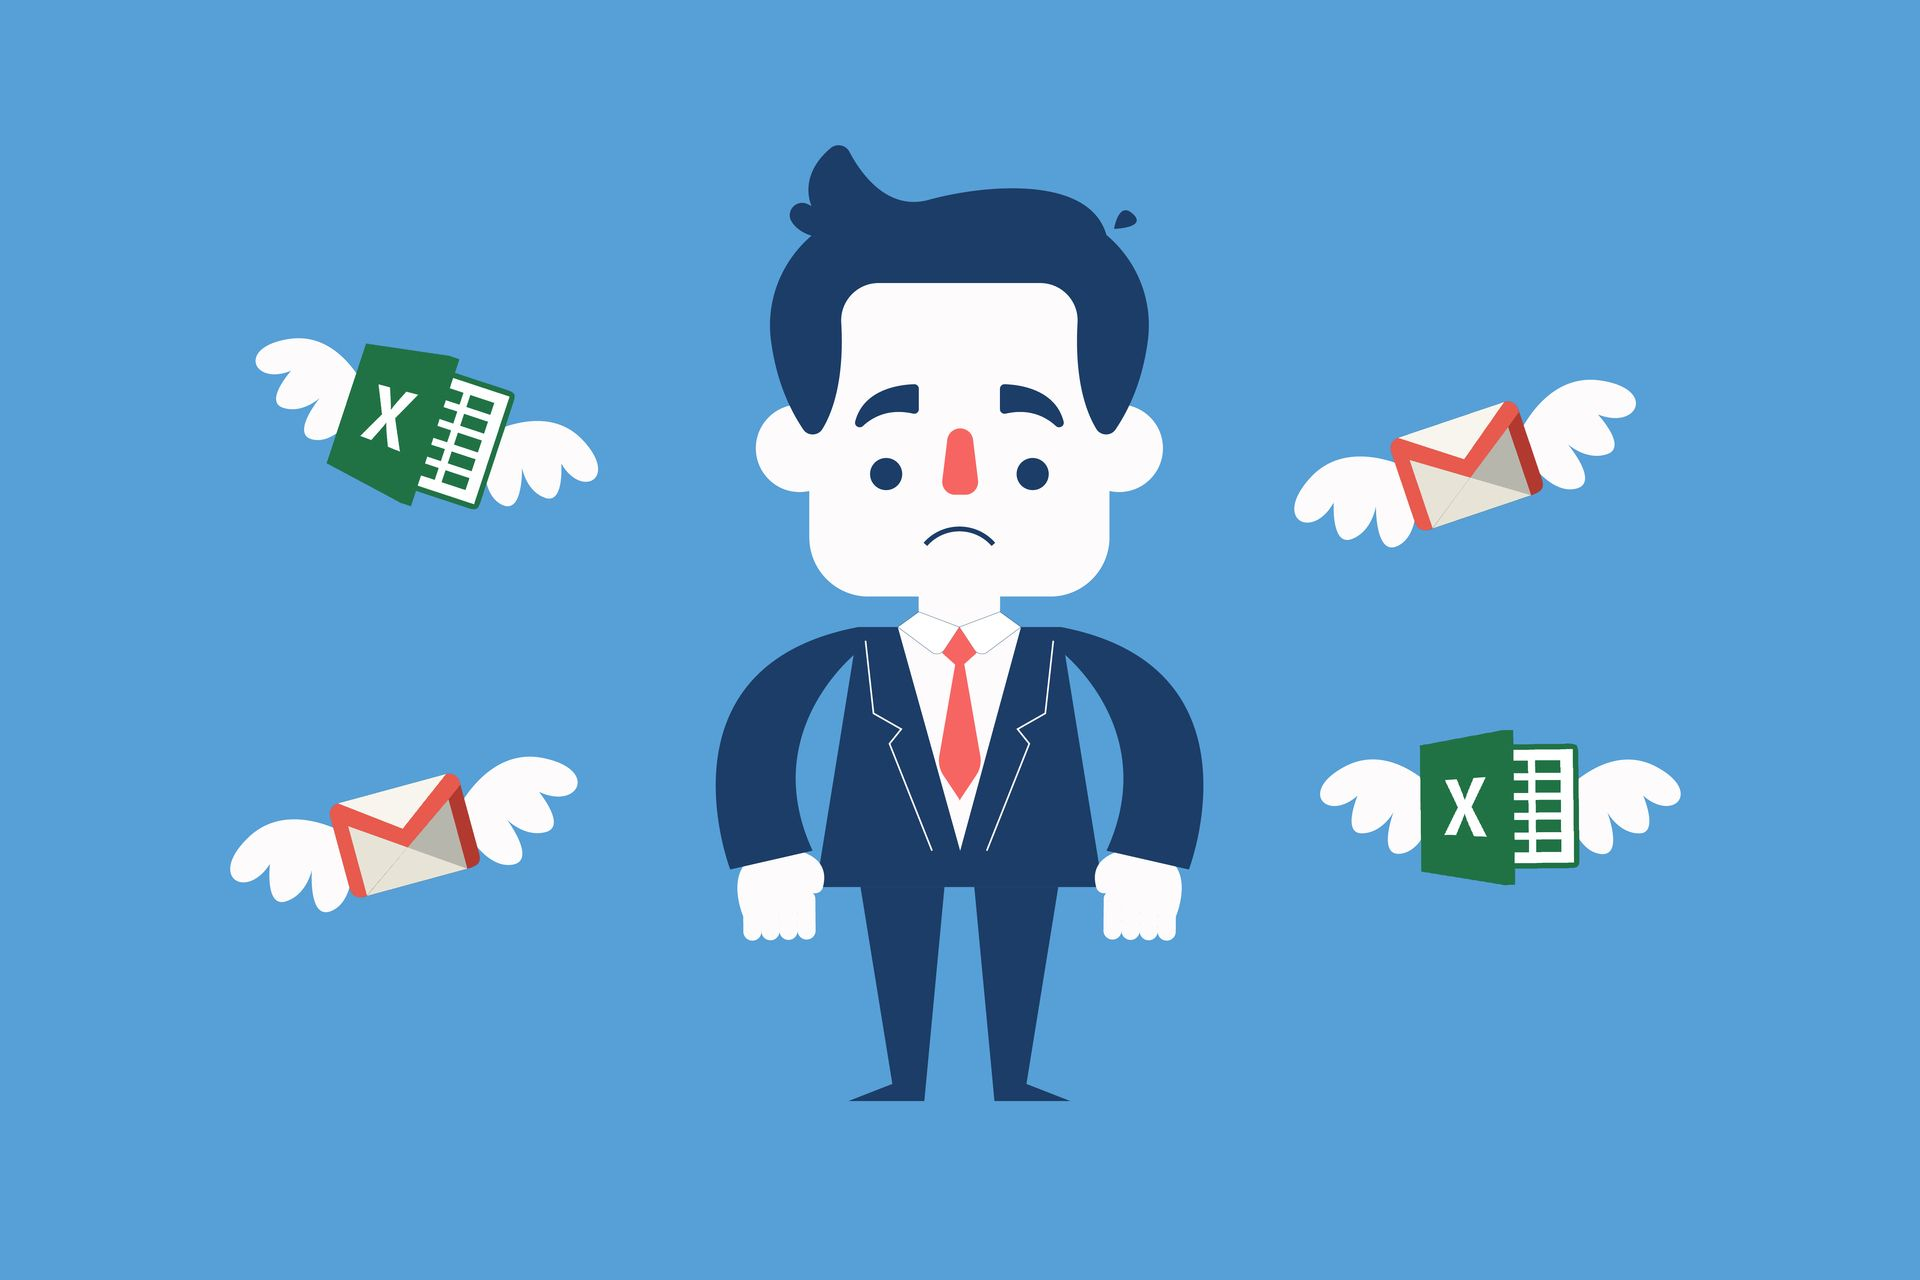 cong-cu-quan-ly-e-management-thay-the-excel-va-email